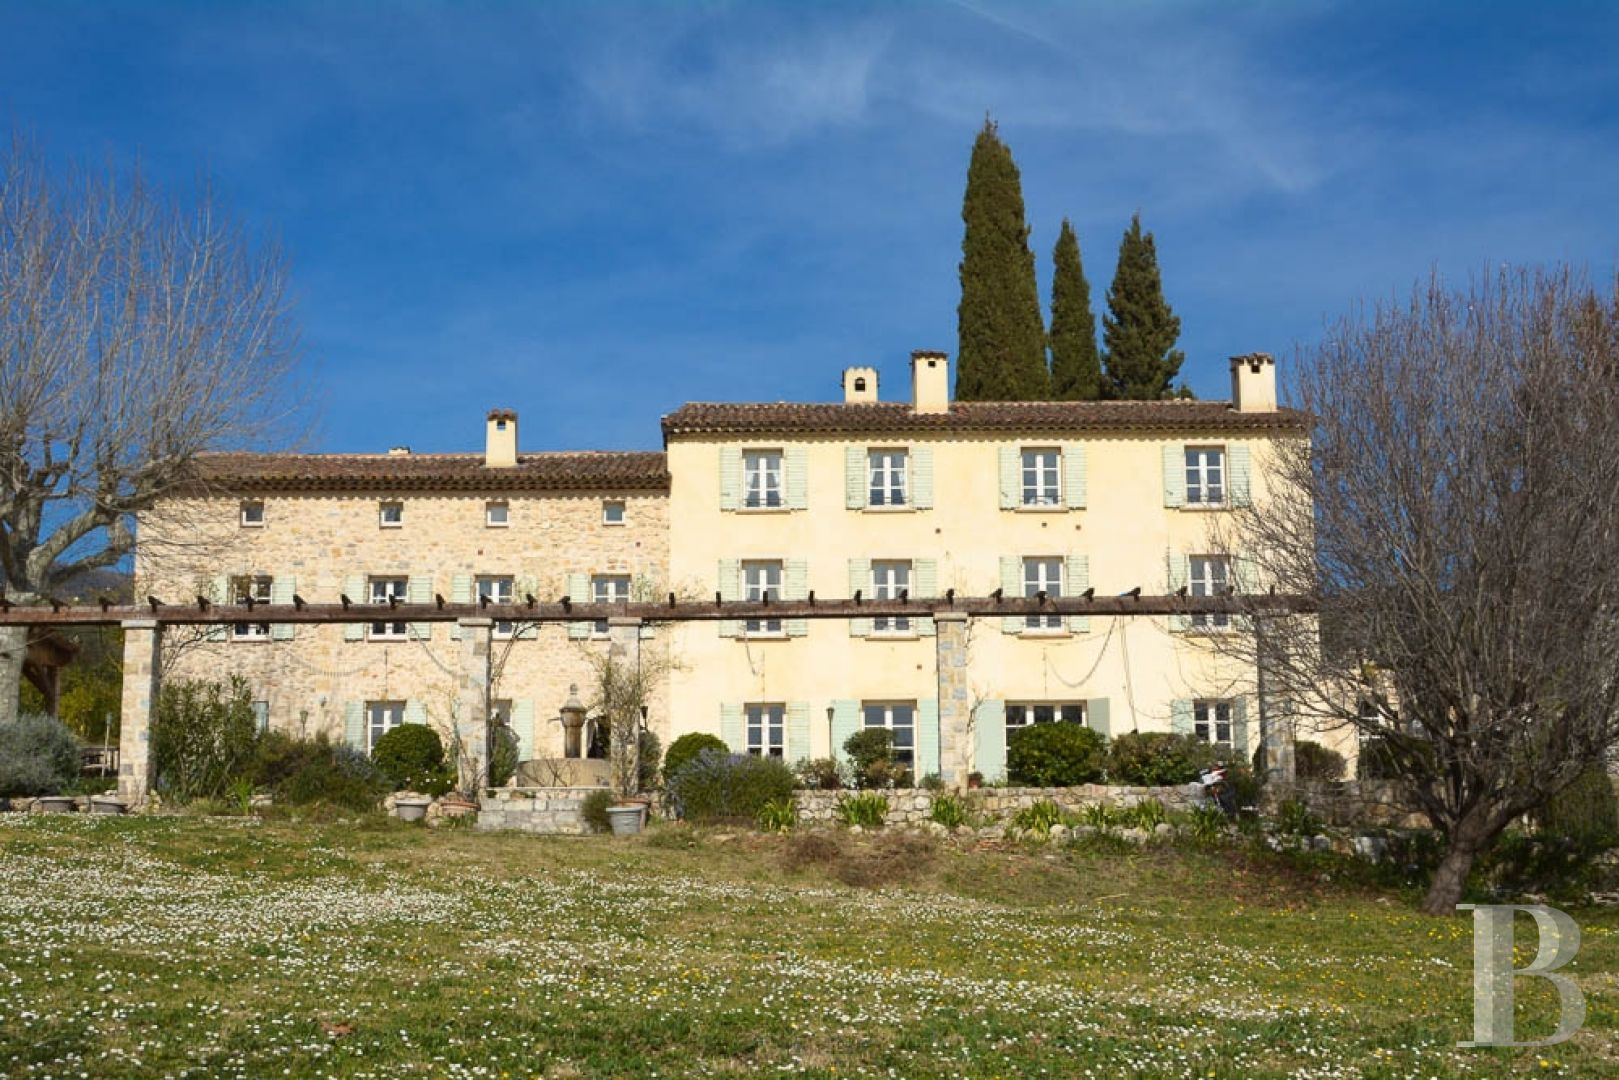 property for sale France provence cote dazur residences traditional - 2 zoom